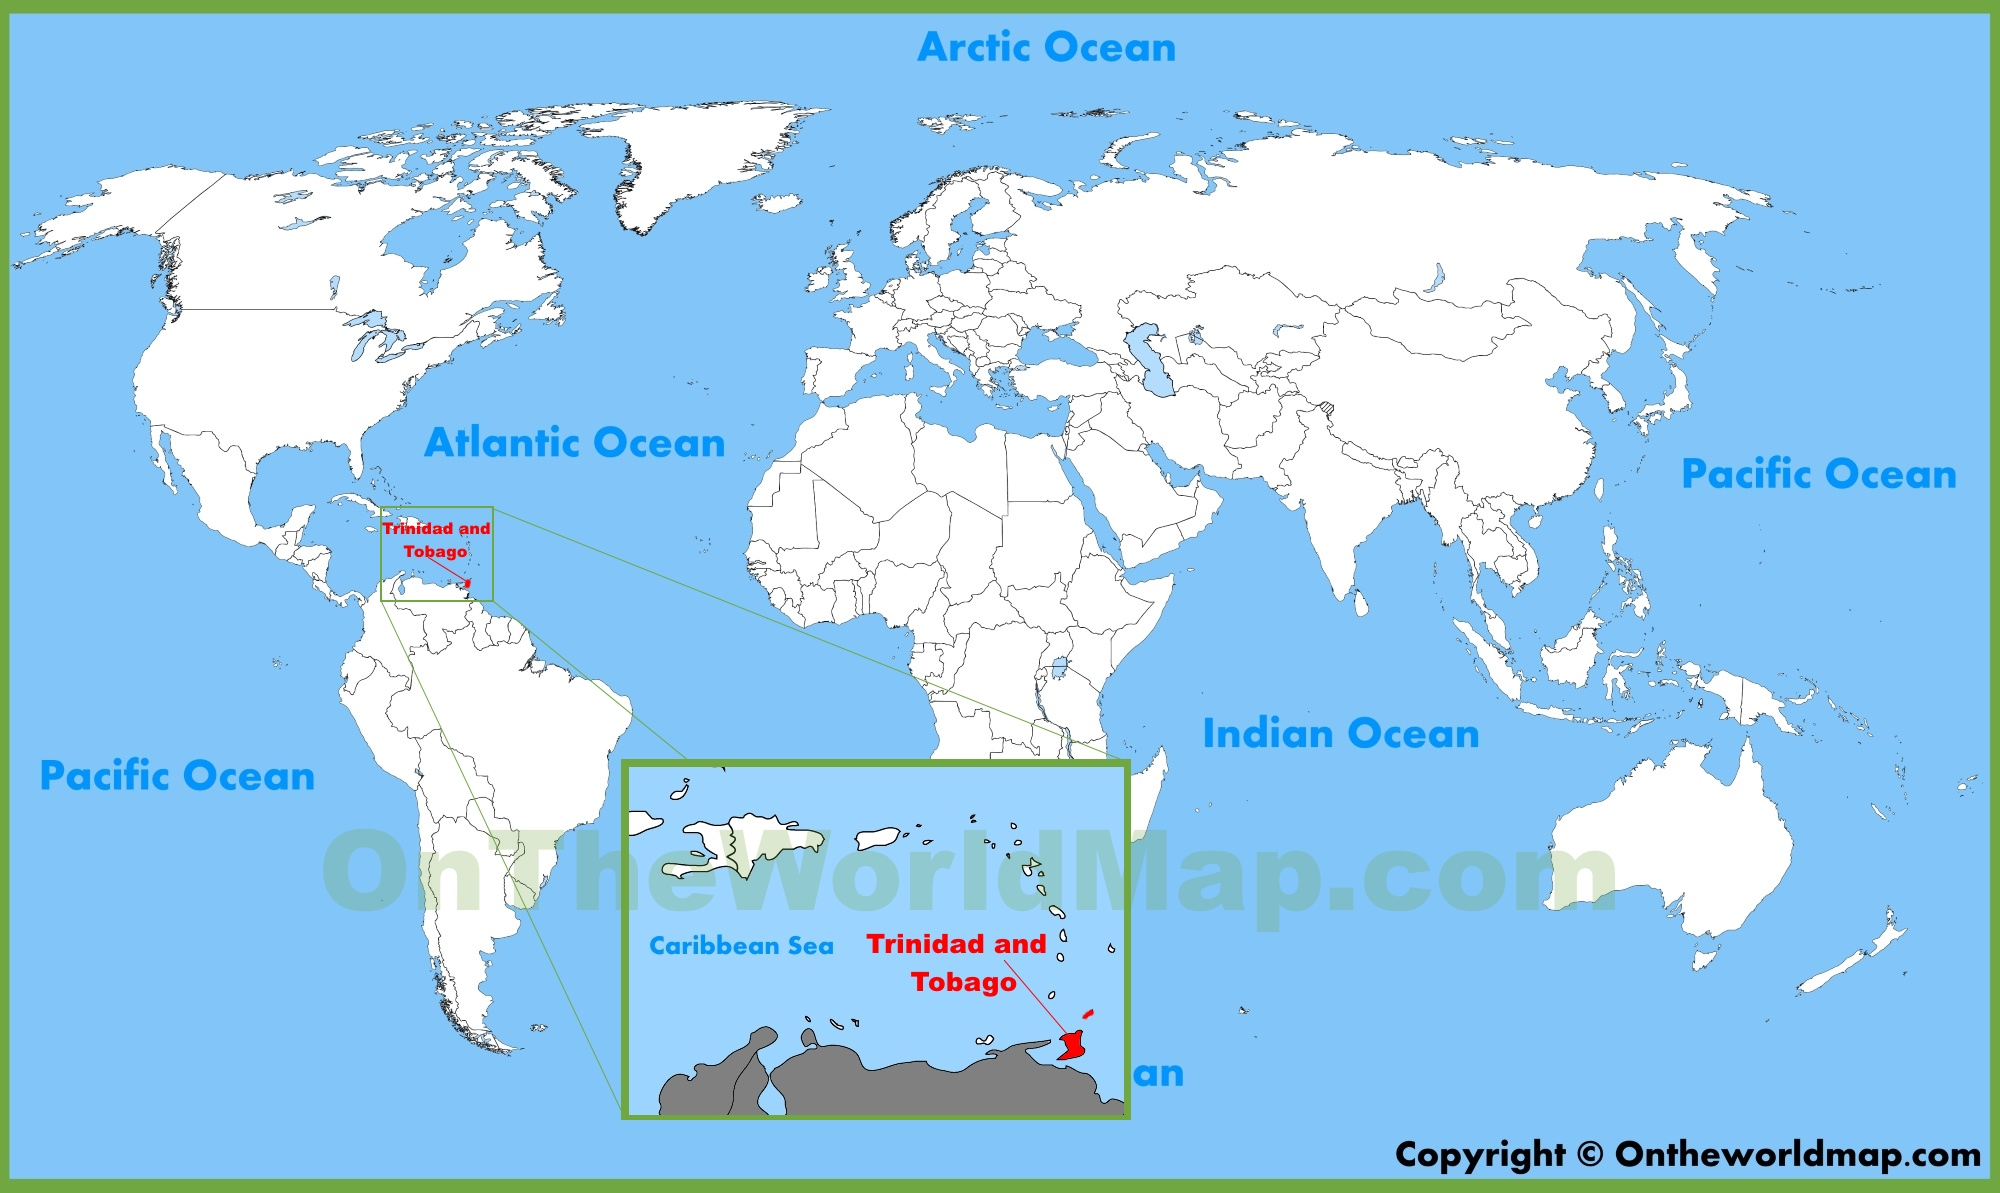 Trinidad On World Map Trinidad and Tobago location on the World Map